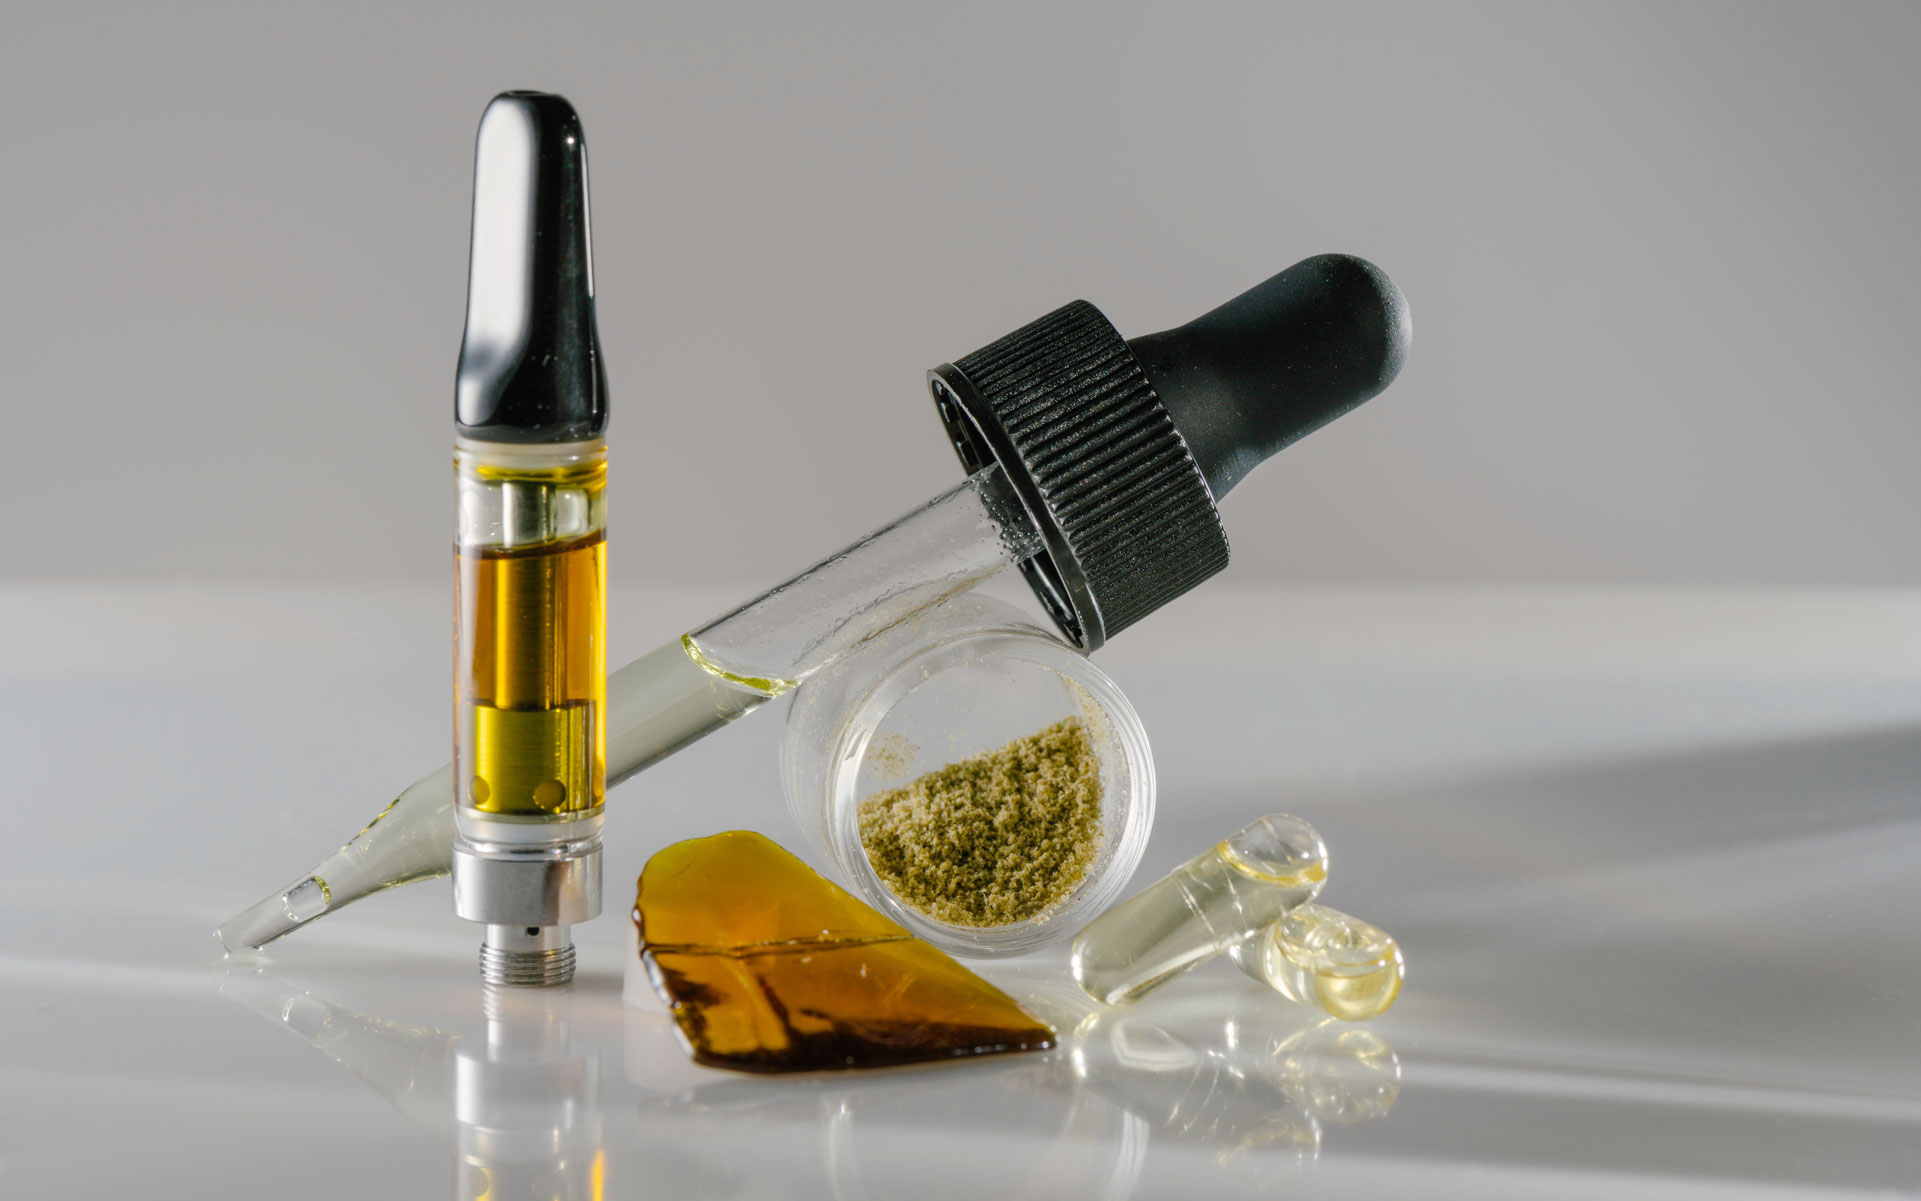 Cannabis Concentrates and Extracts: A Quick Introduction